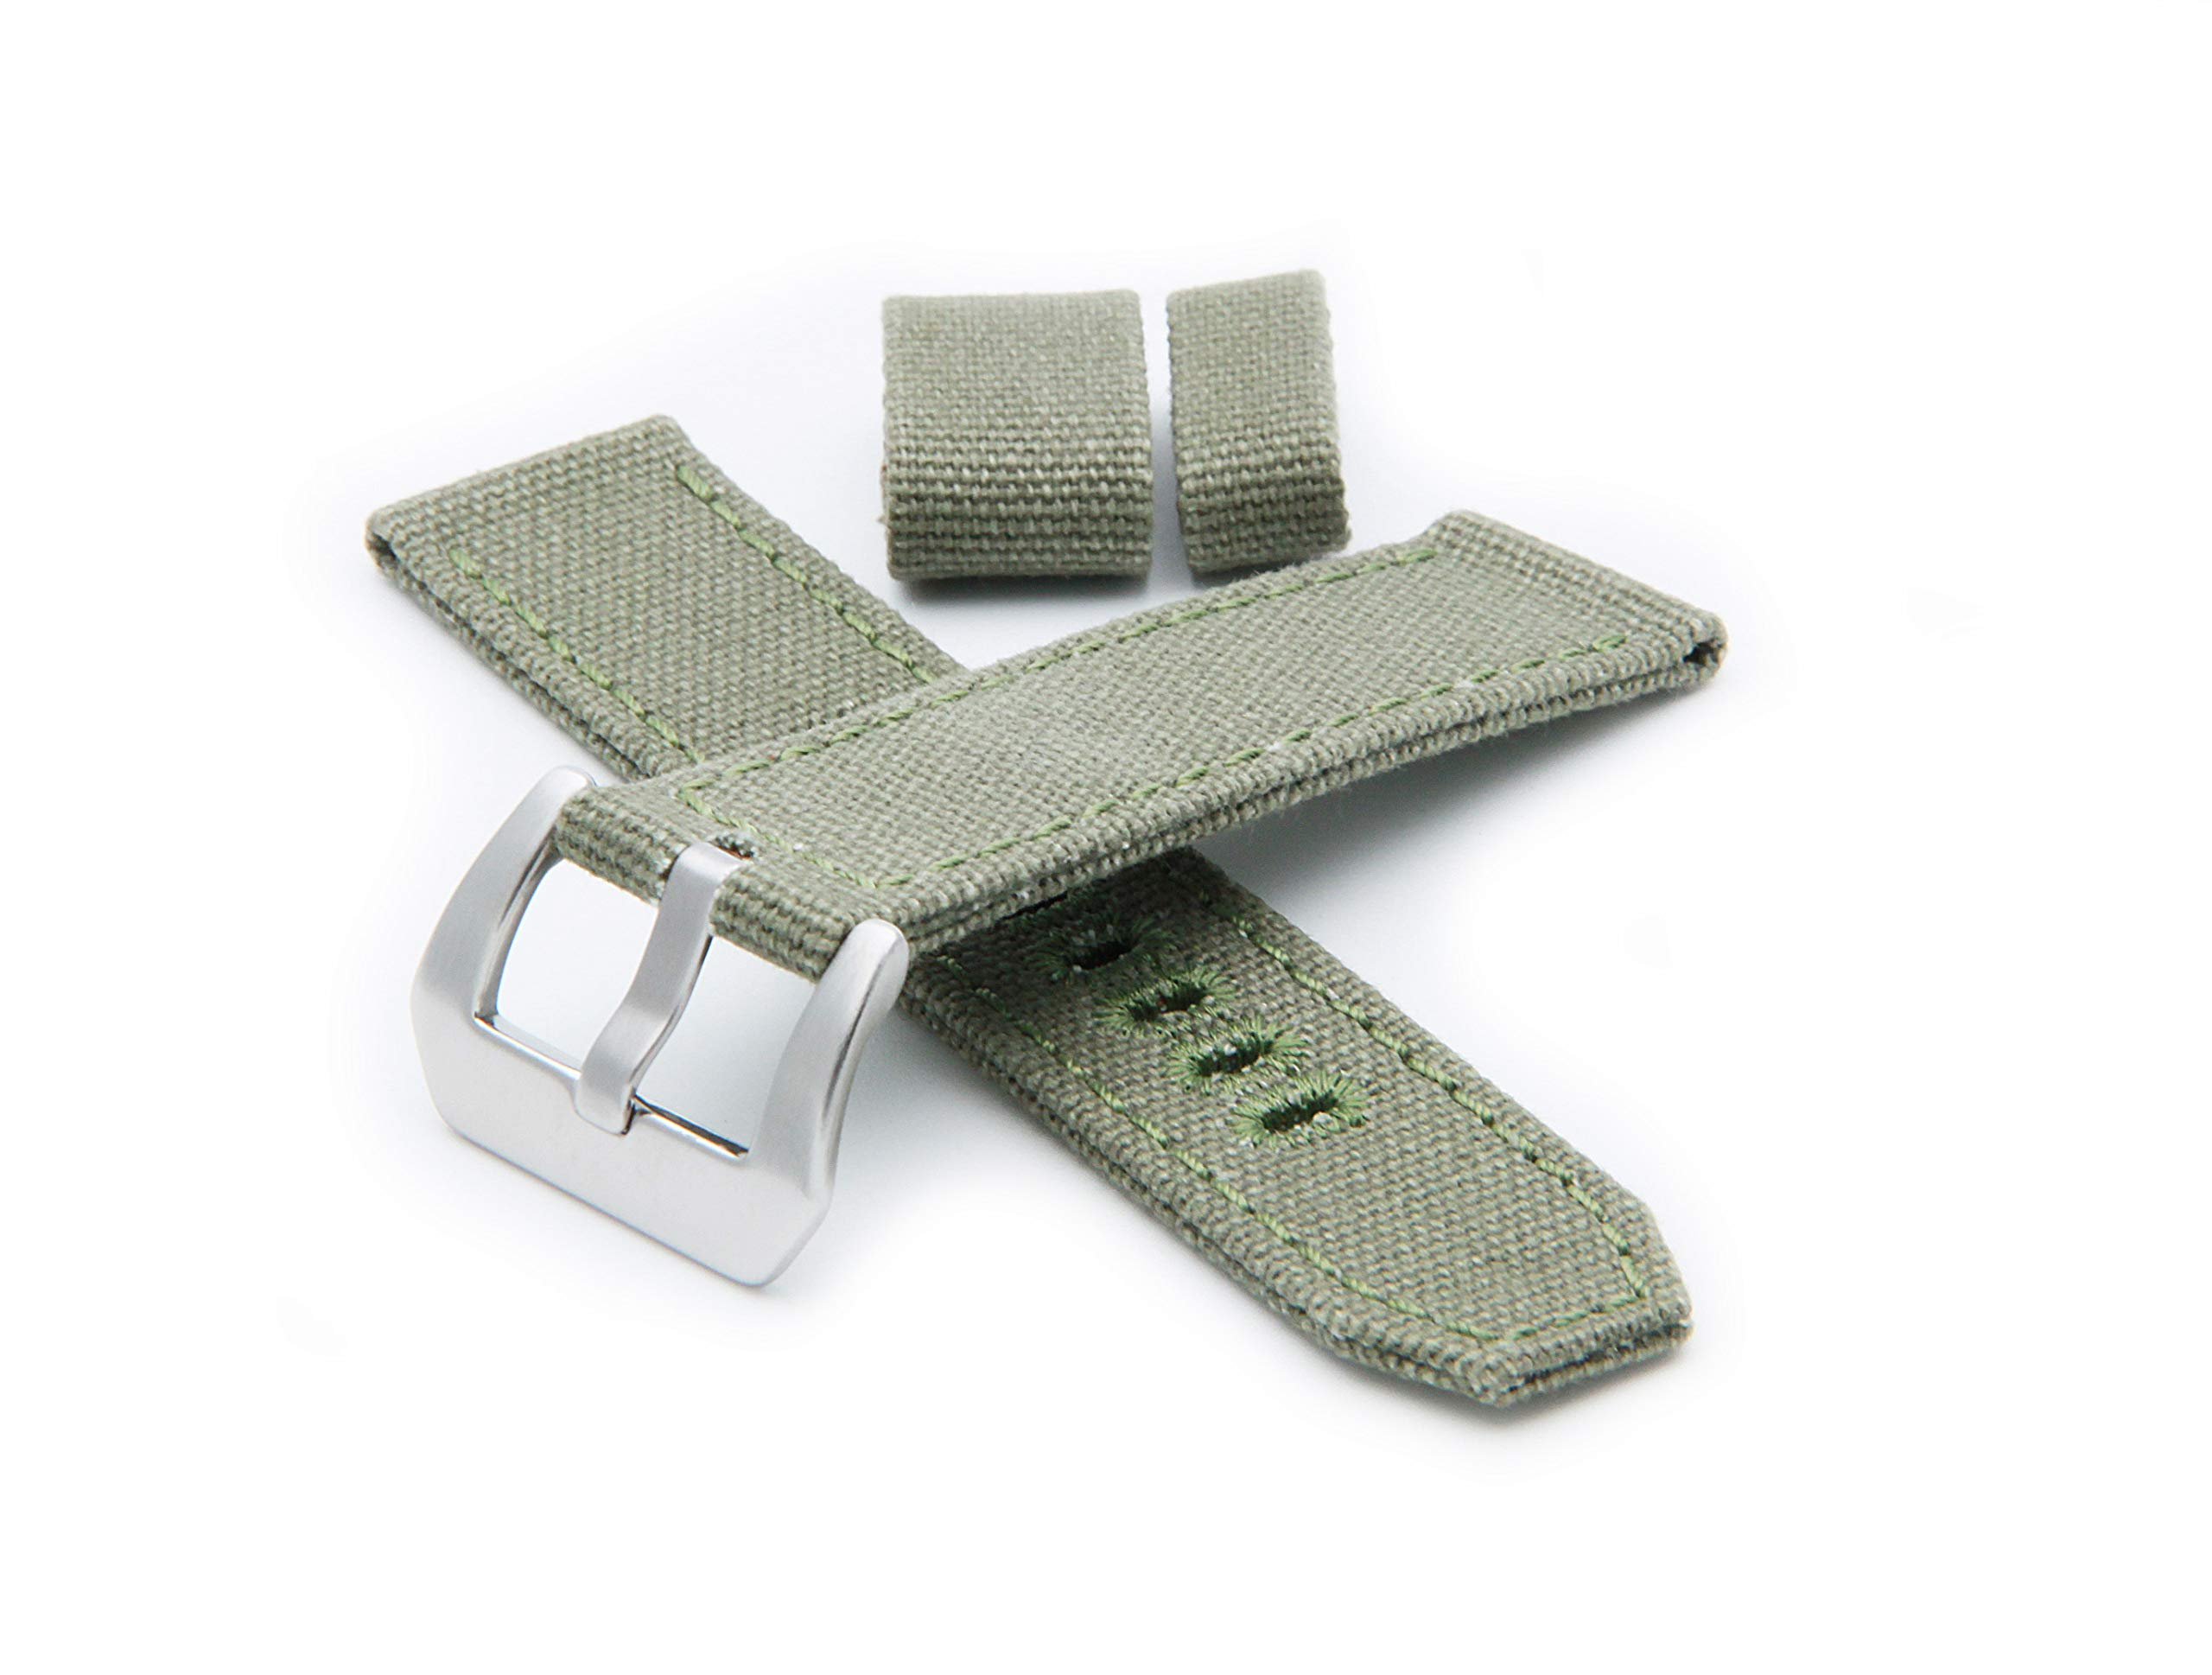 Helm Watches CS1 Canvas Strap - Green (22mm)